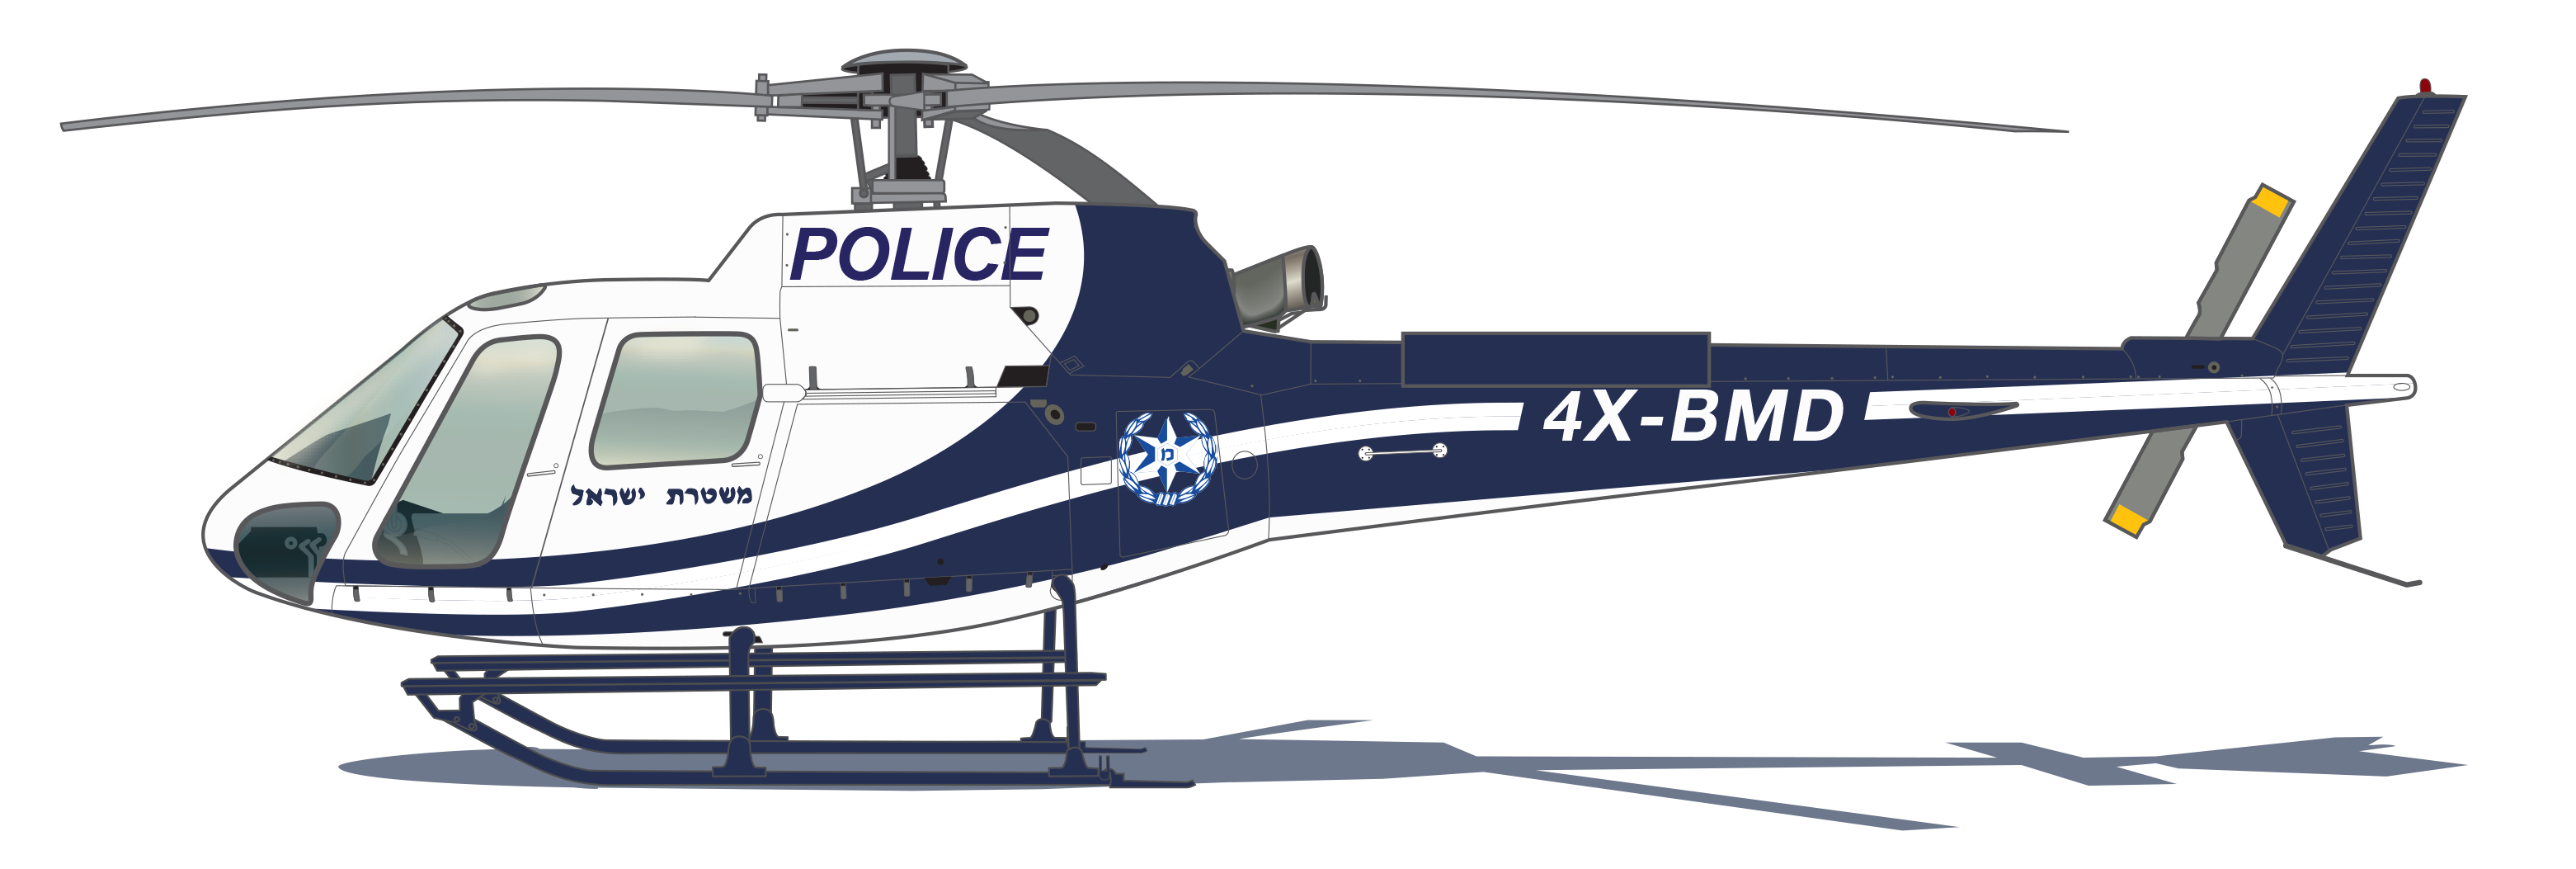 Police letters format pencil. Helicopter clipart color